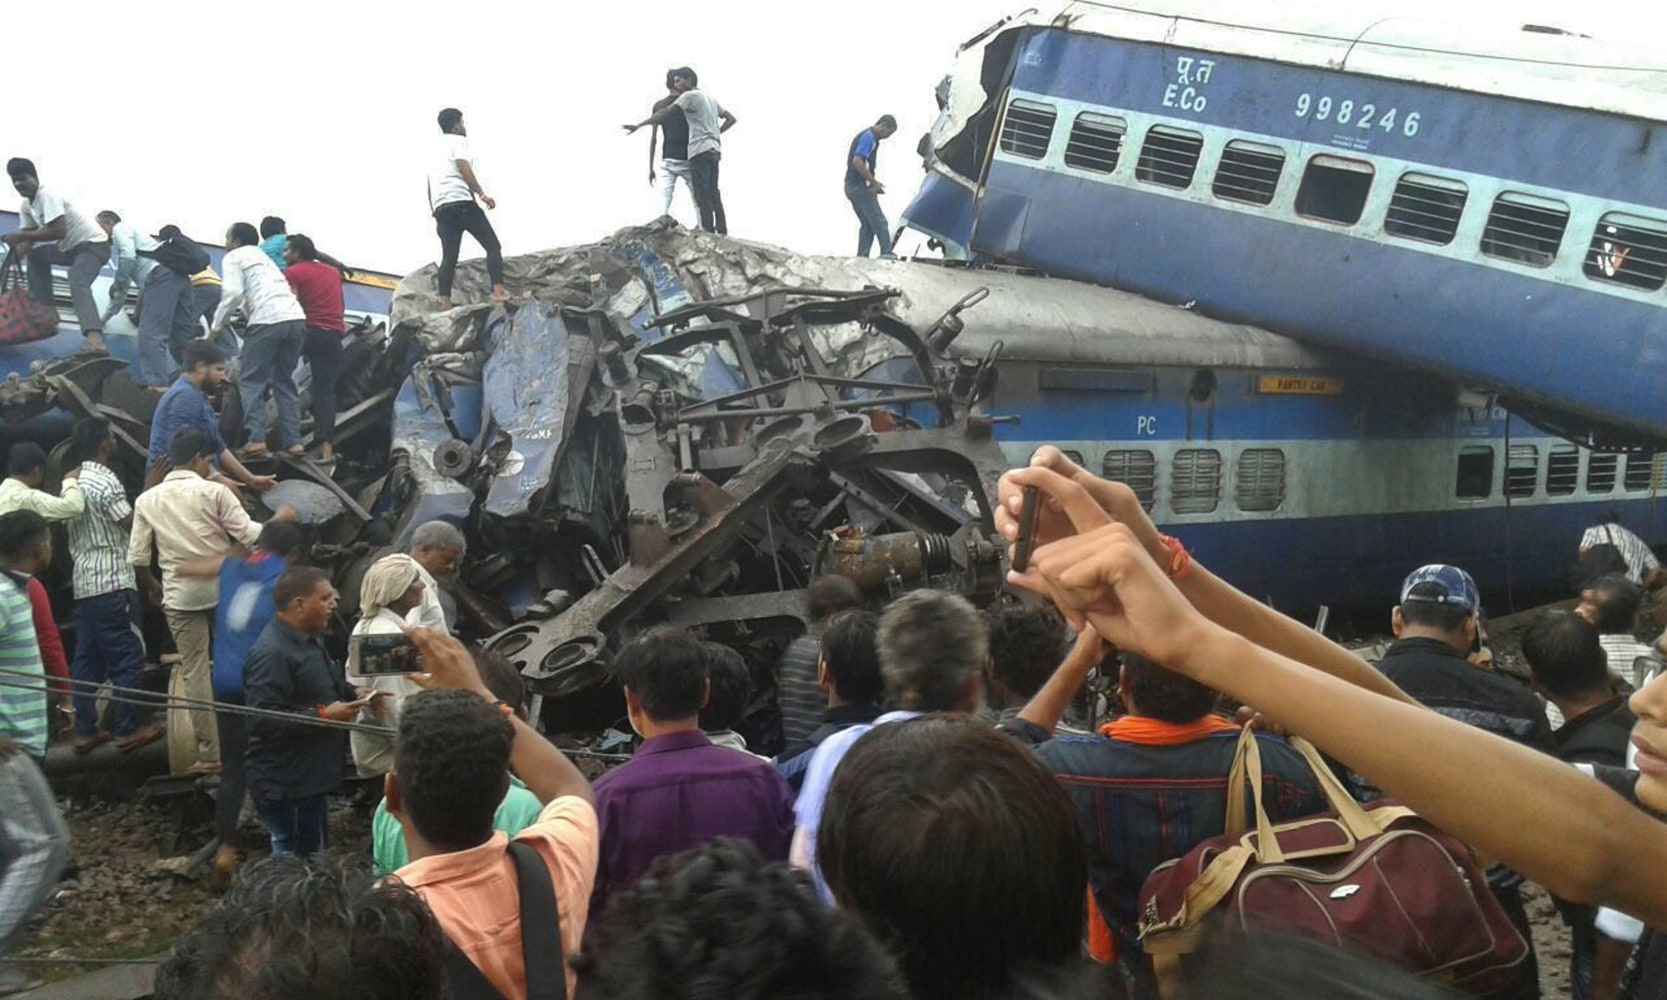 20 killed, 50 injured after passenger train derails in India